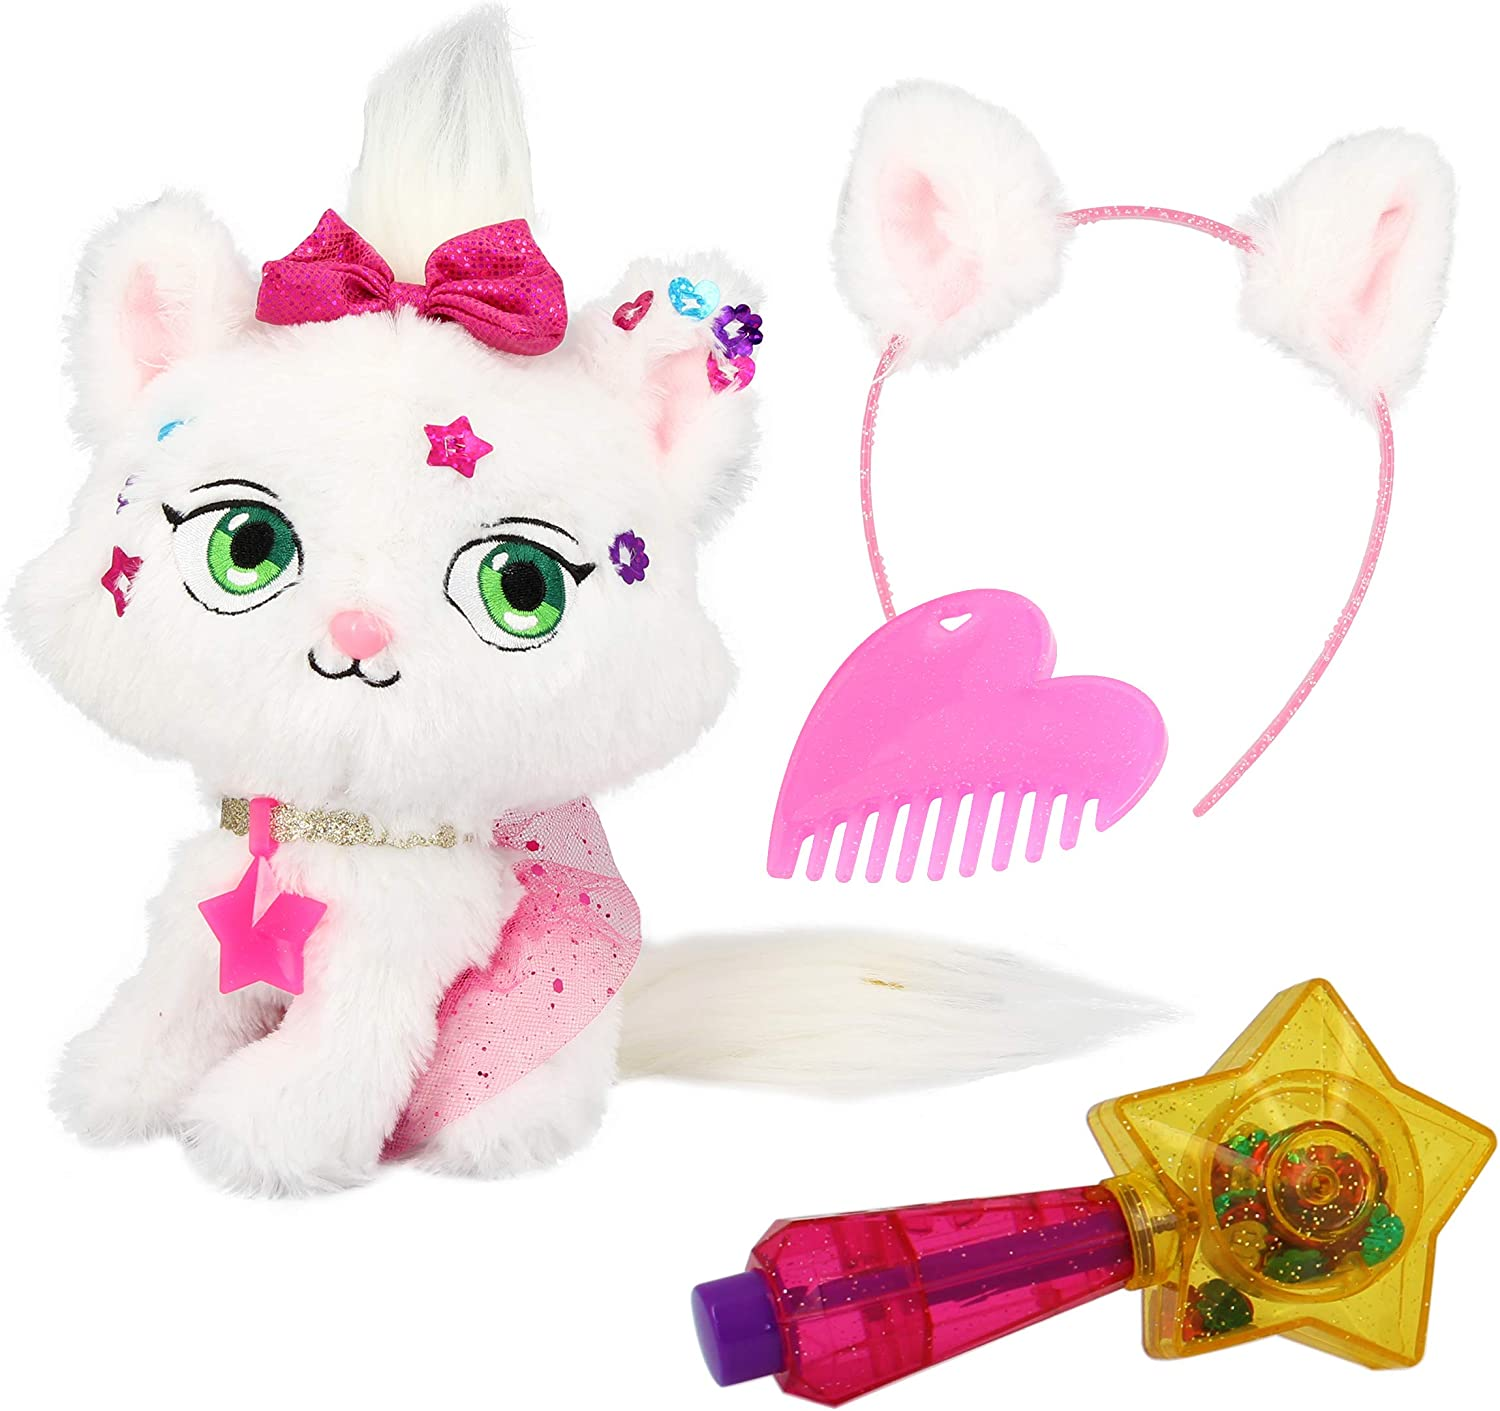 Shimmer Stars Plush Pet You Can Decorate Jelly Bean The Cat Toys Games Amazon Canada